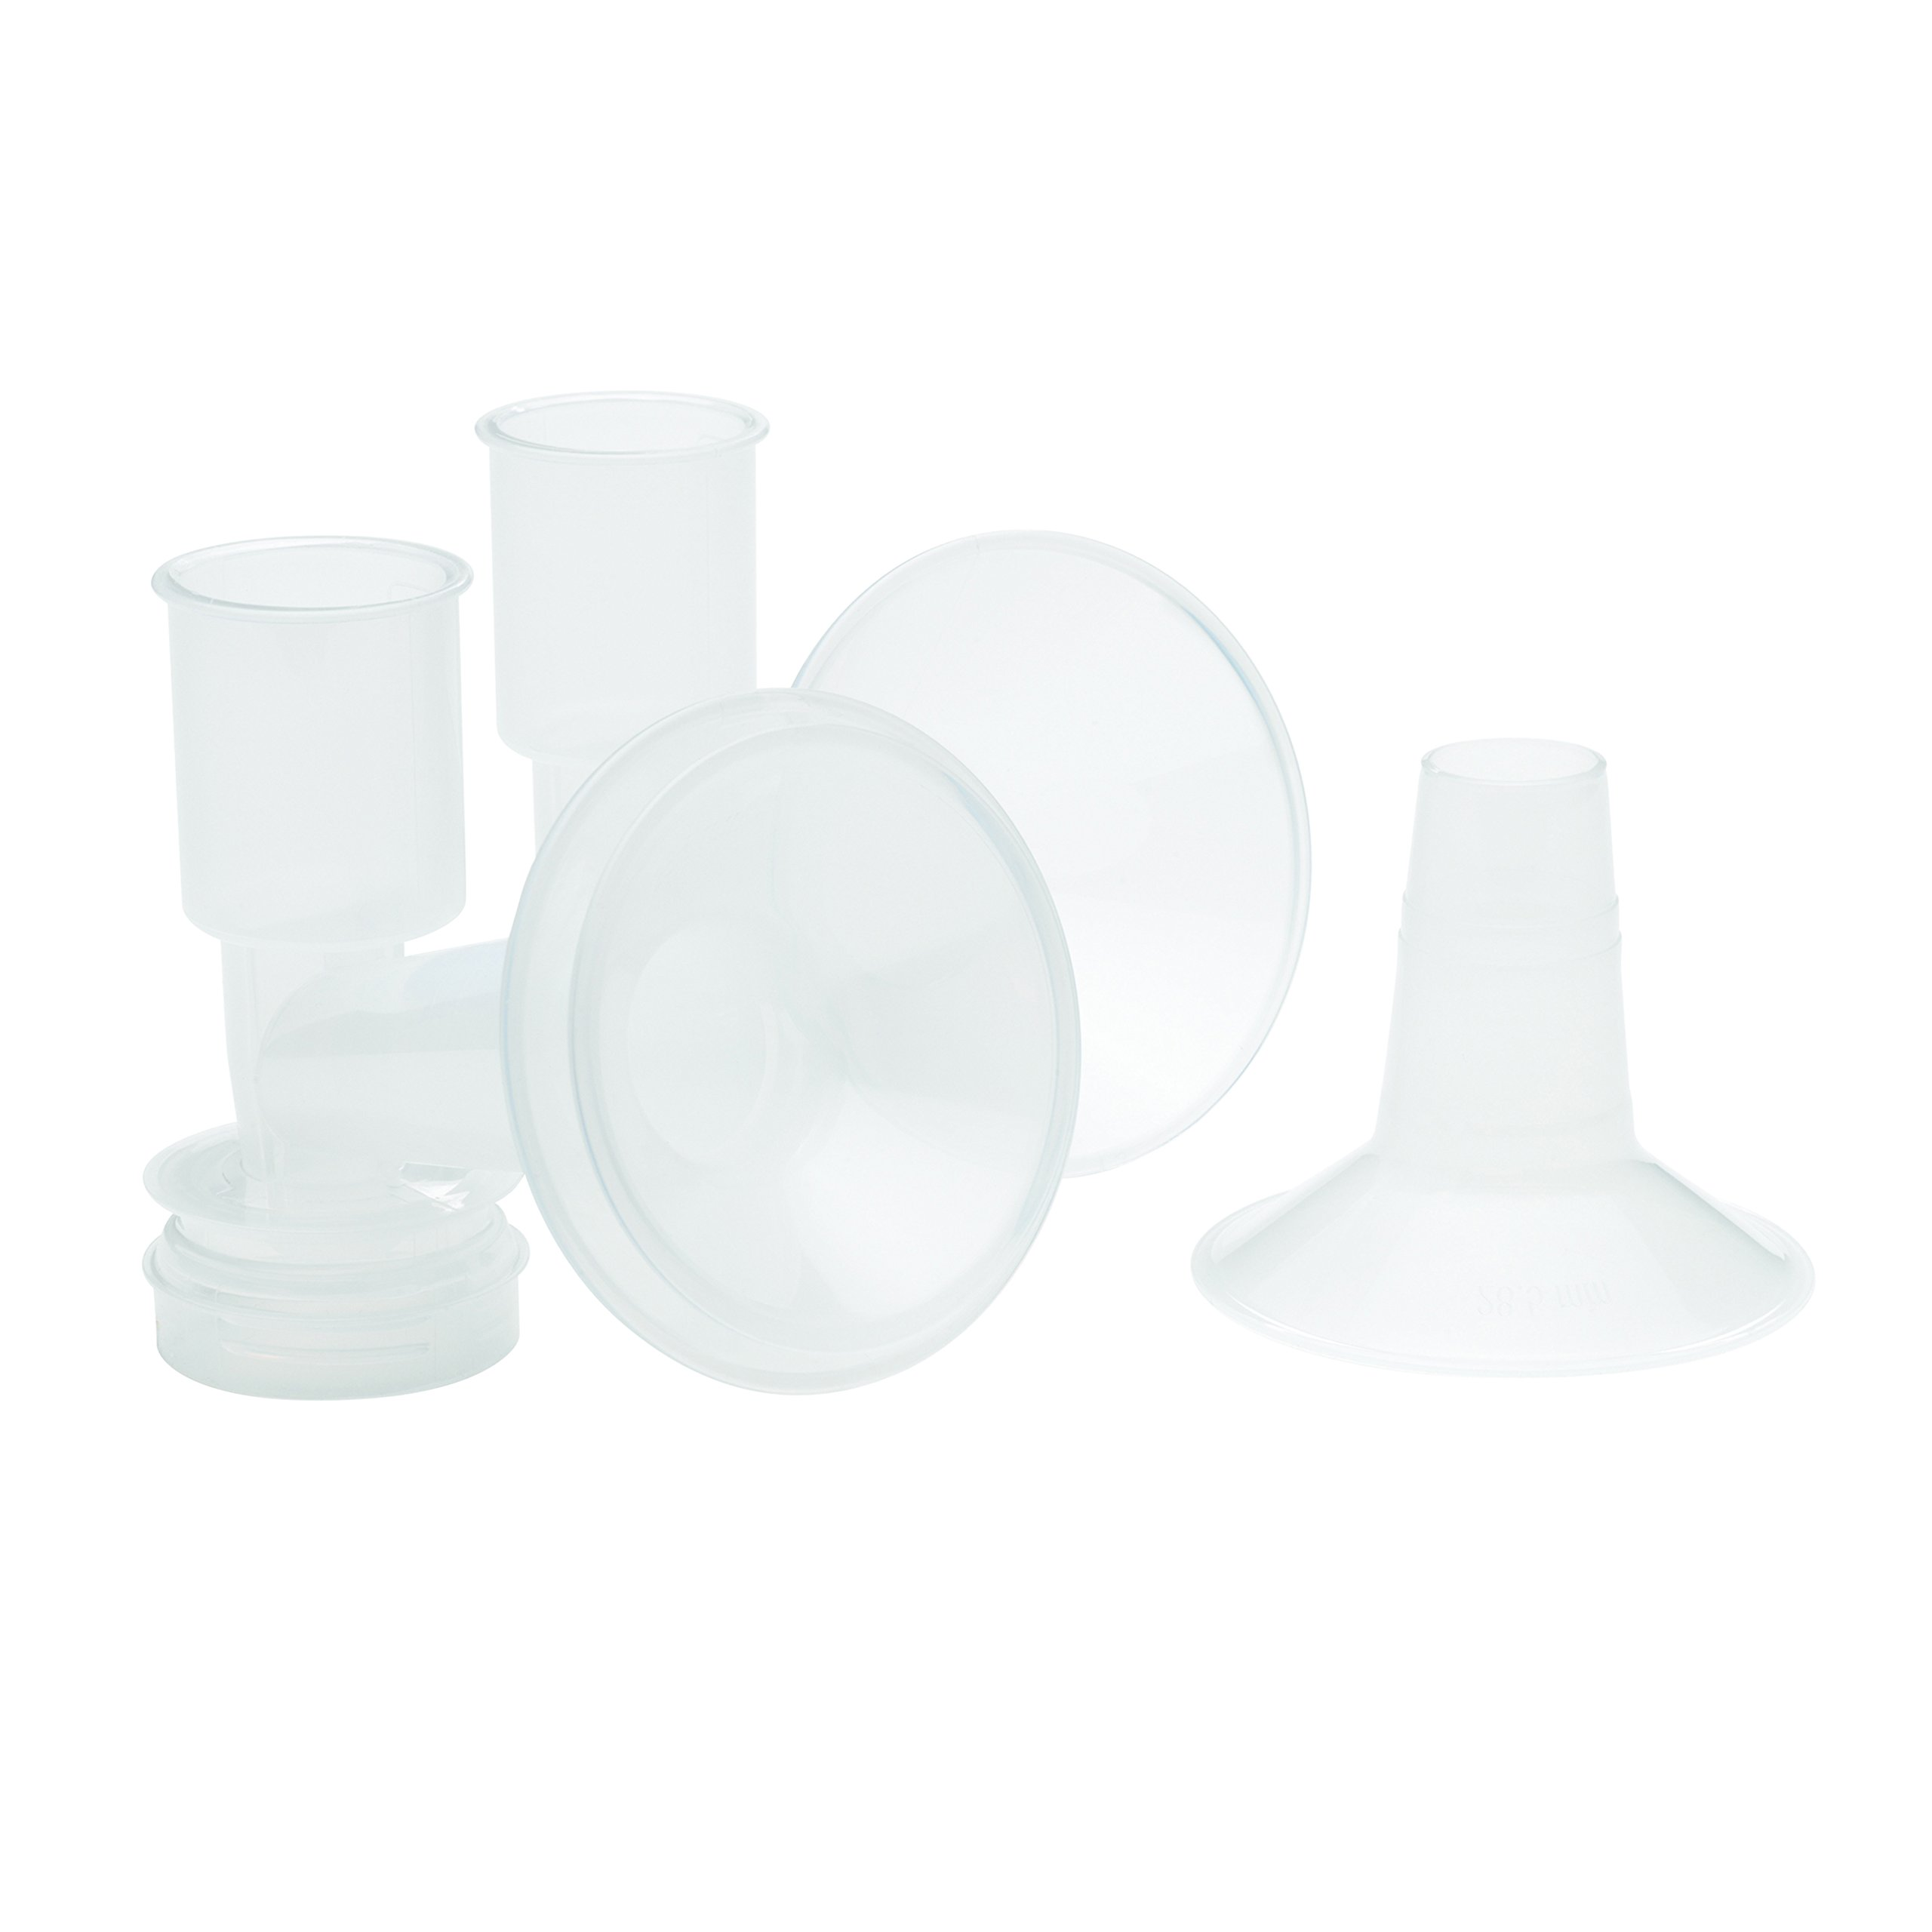 Ameda CustomFit Breast Flanges XL/XXL, 2-36mm Flanges with 32.5mm Insert, Extra Flanges for Better Sizing and More Comfortable Pumping, Fits Ameda Breast Pump Kits by Ameda